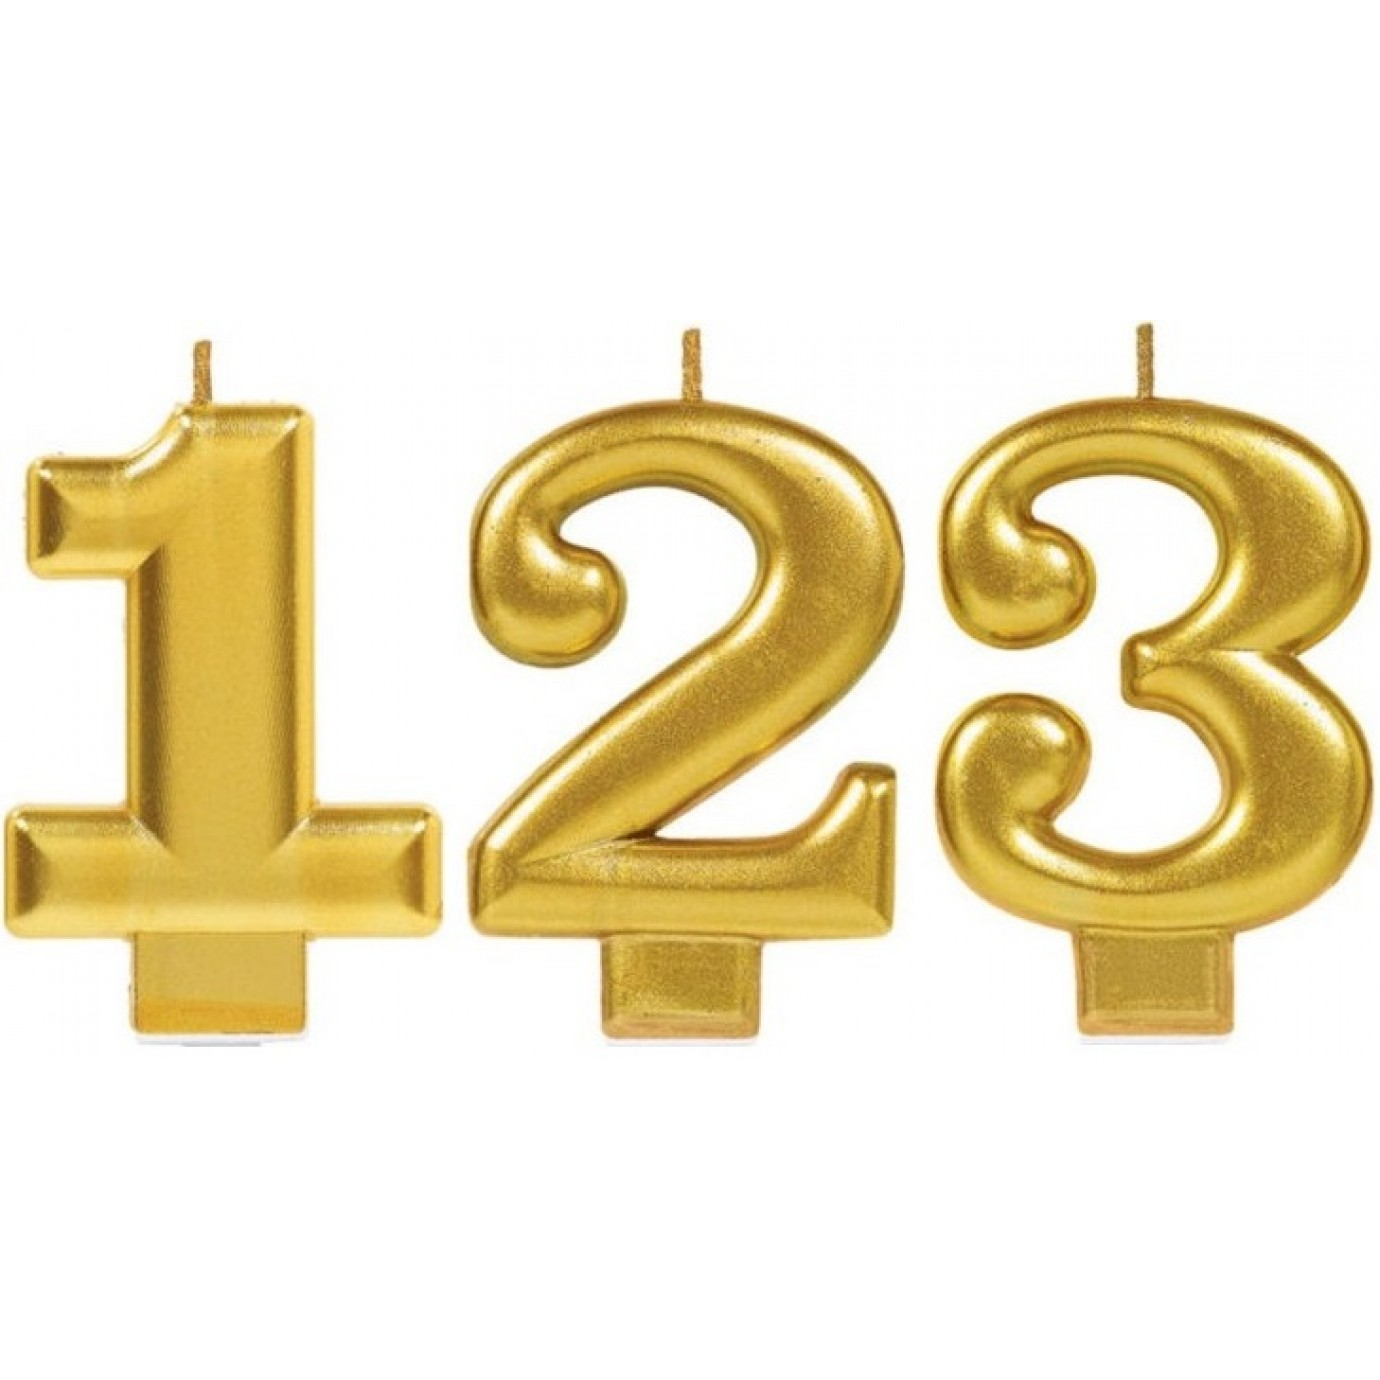 Candle Number Gold Metallic Birthday Cake Candles Baking By Accessories Catering Supplies Party Supplies The Party People Shop